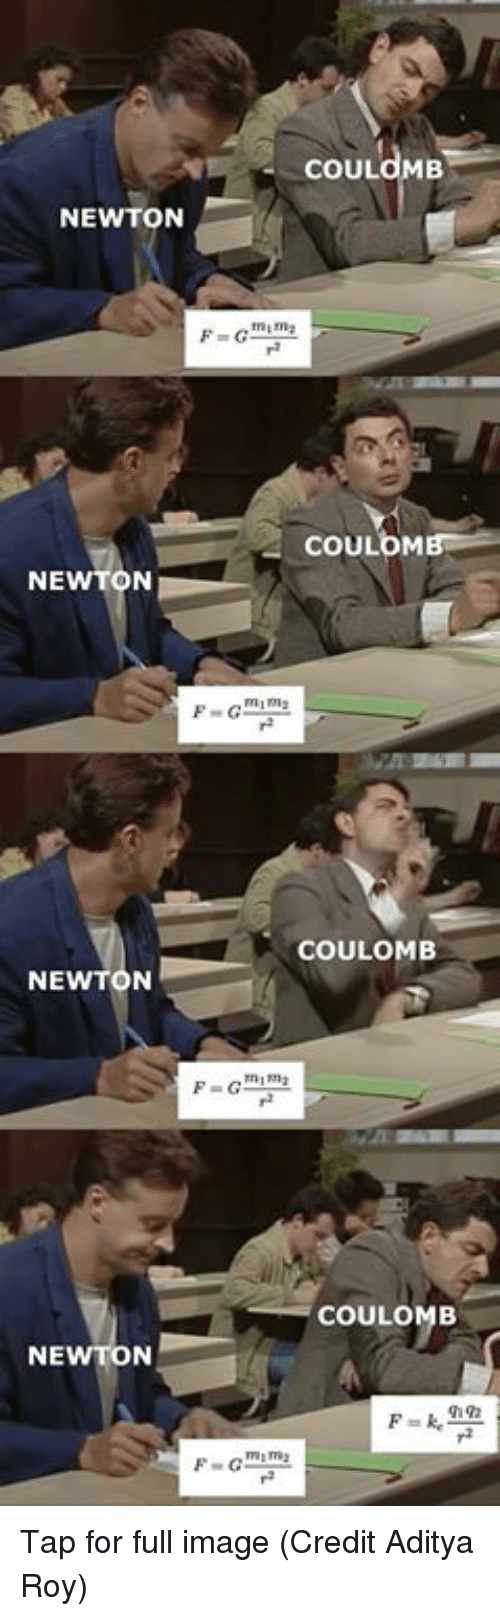 Memes, Image, and 🤖: ECOULOMB  NEWTON  COULOM  NEWTON  F-Giim  COULOMB  NEWTON  P-GIM  COULOMB  NE  F-om Tap for full image  (Credit Aditya Roy)